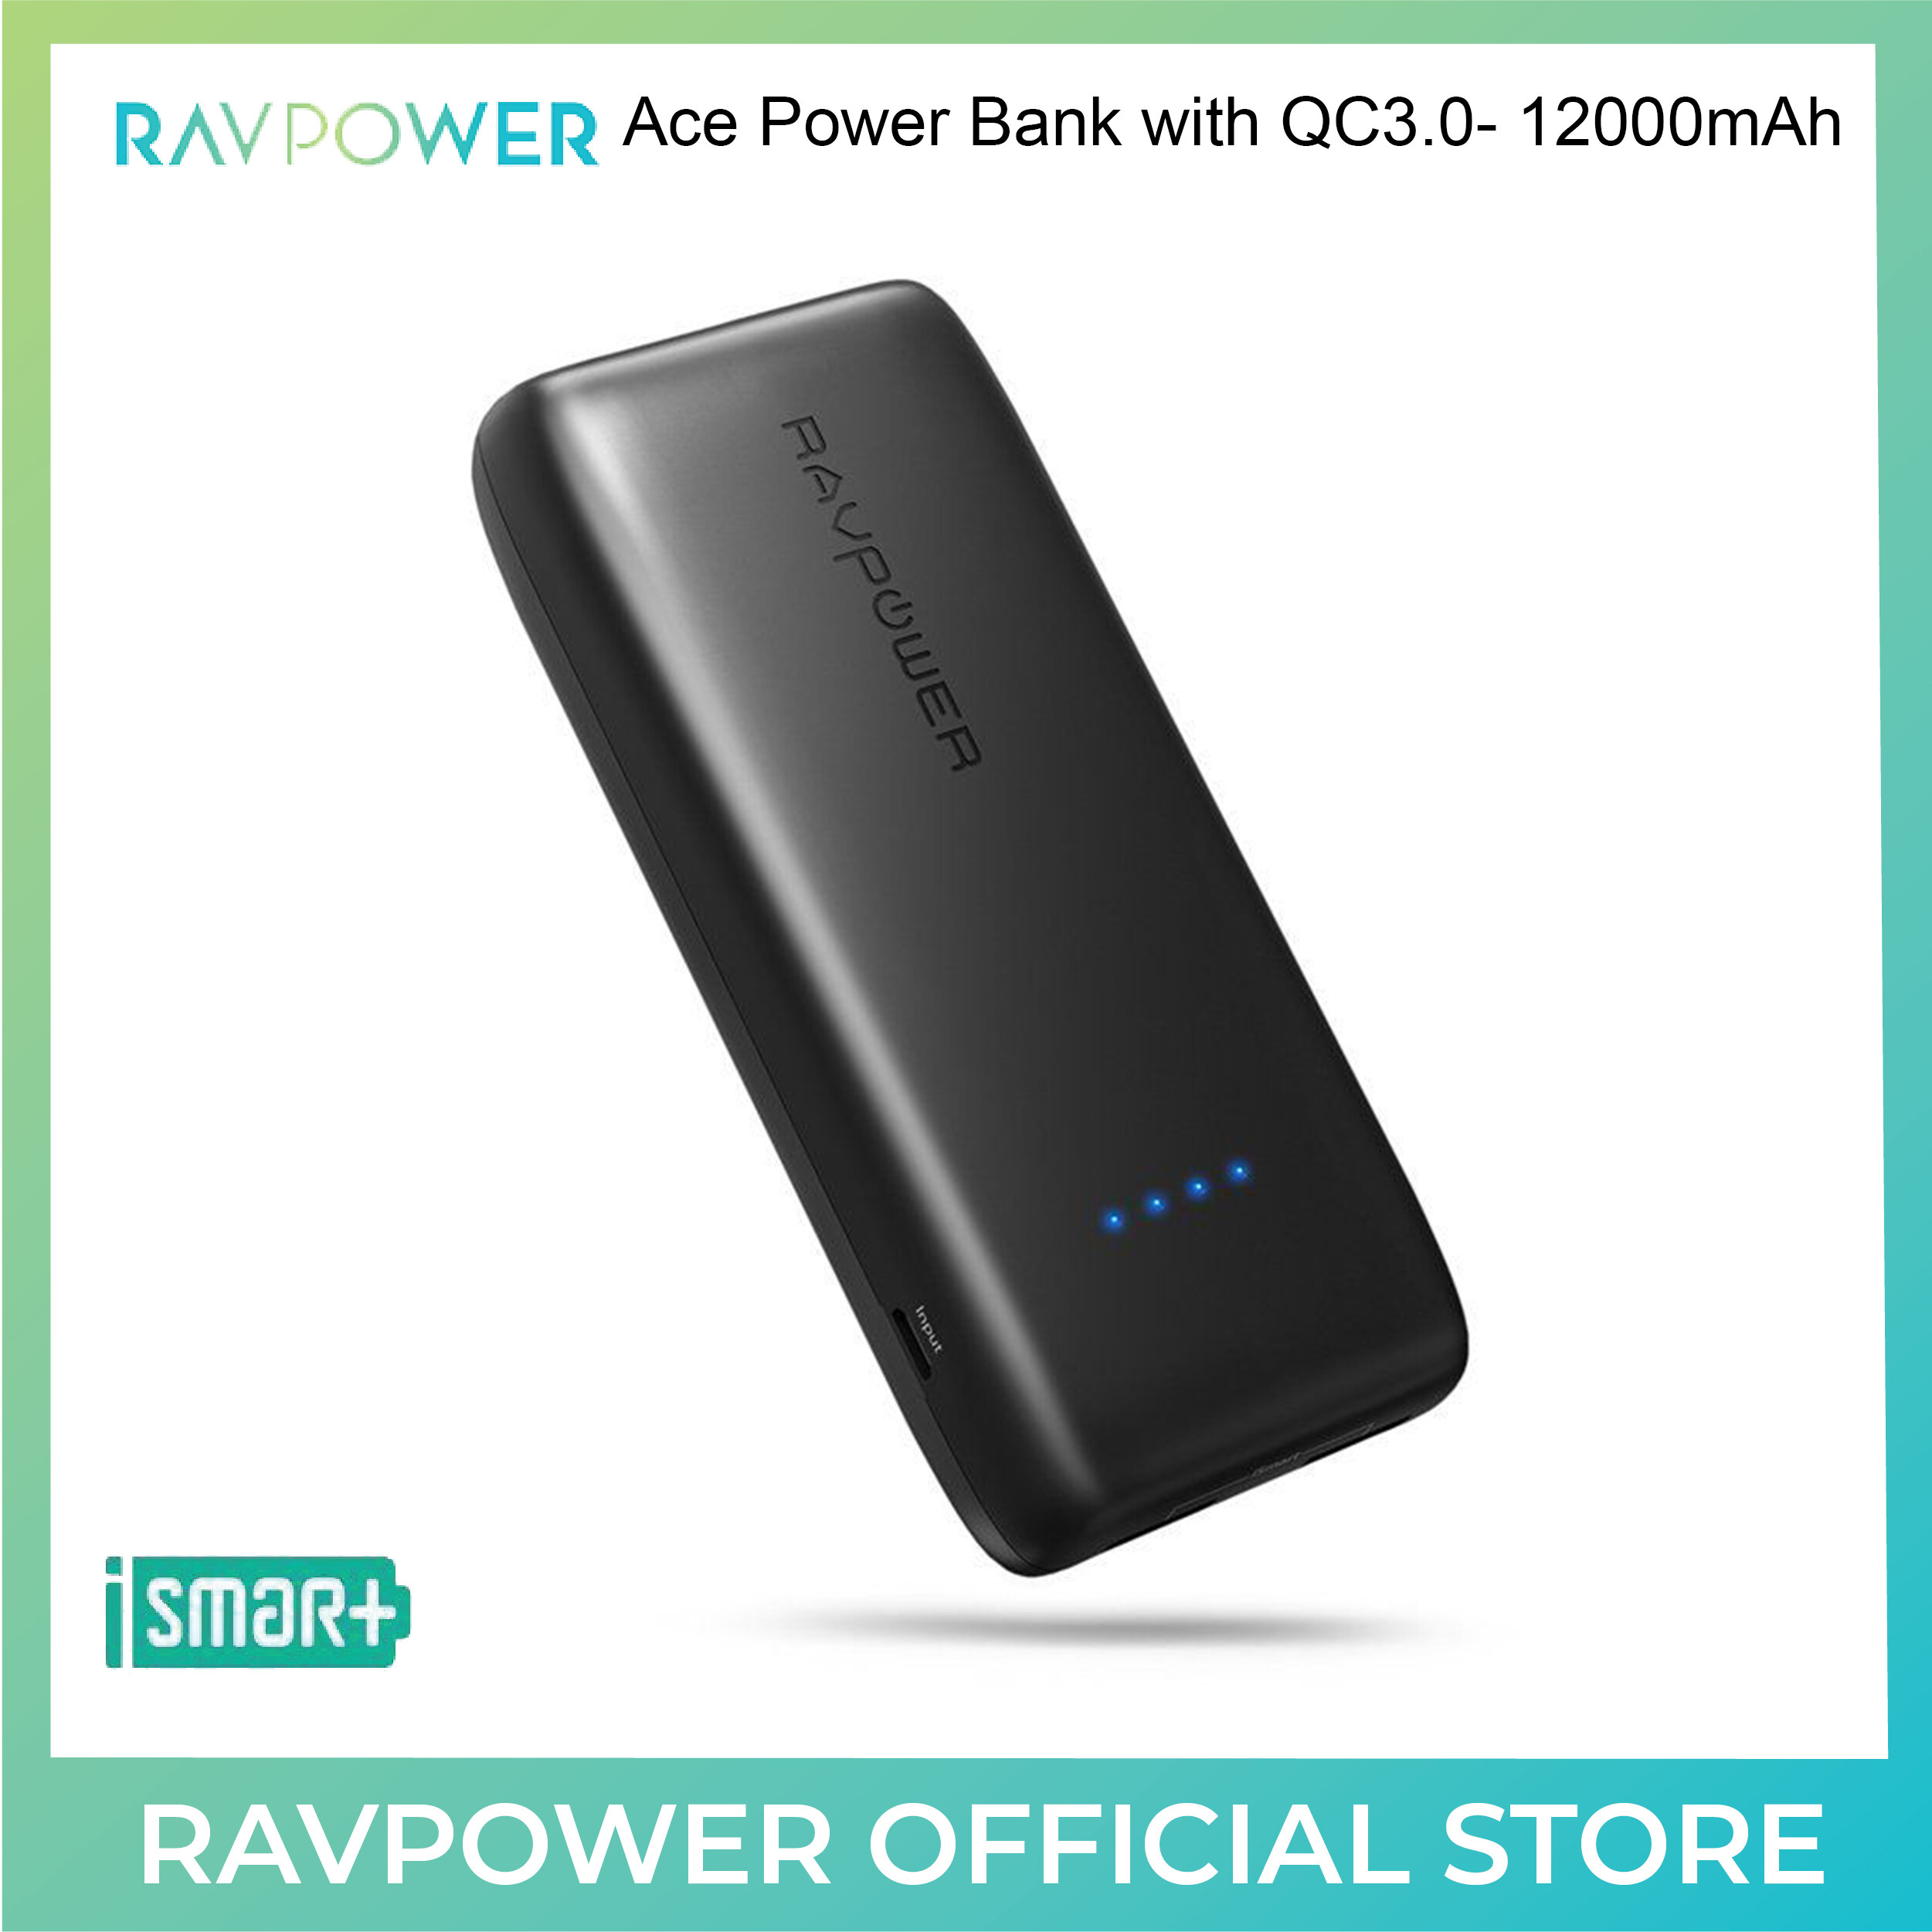 RAVPower Ace Power Bank with QC3.0 - 12000mAh